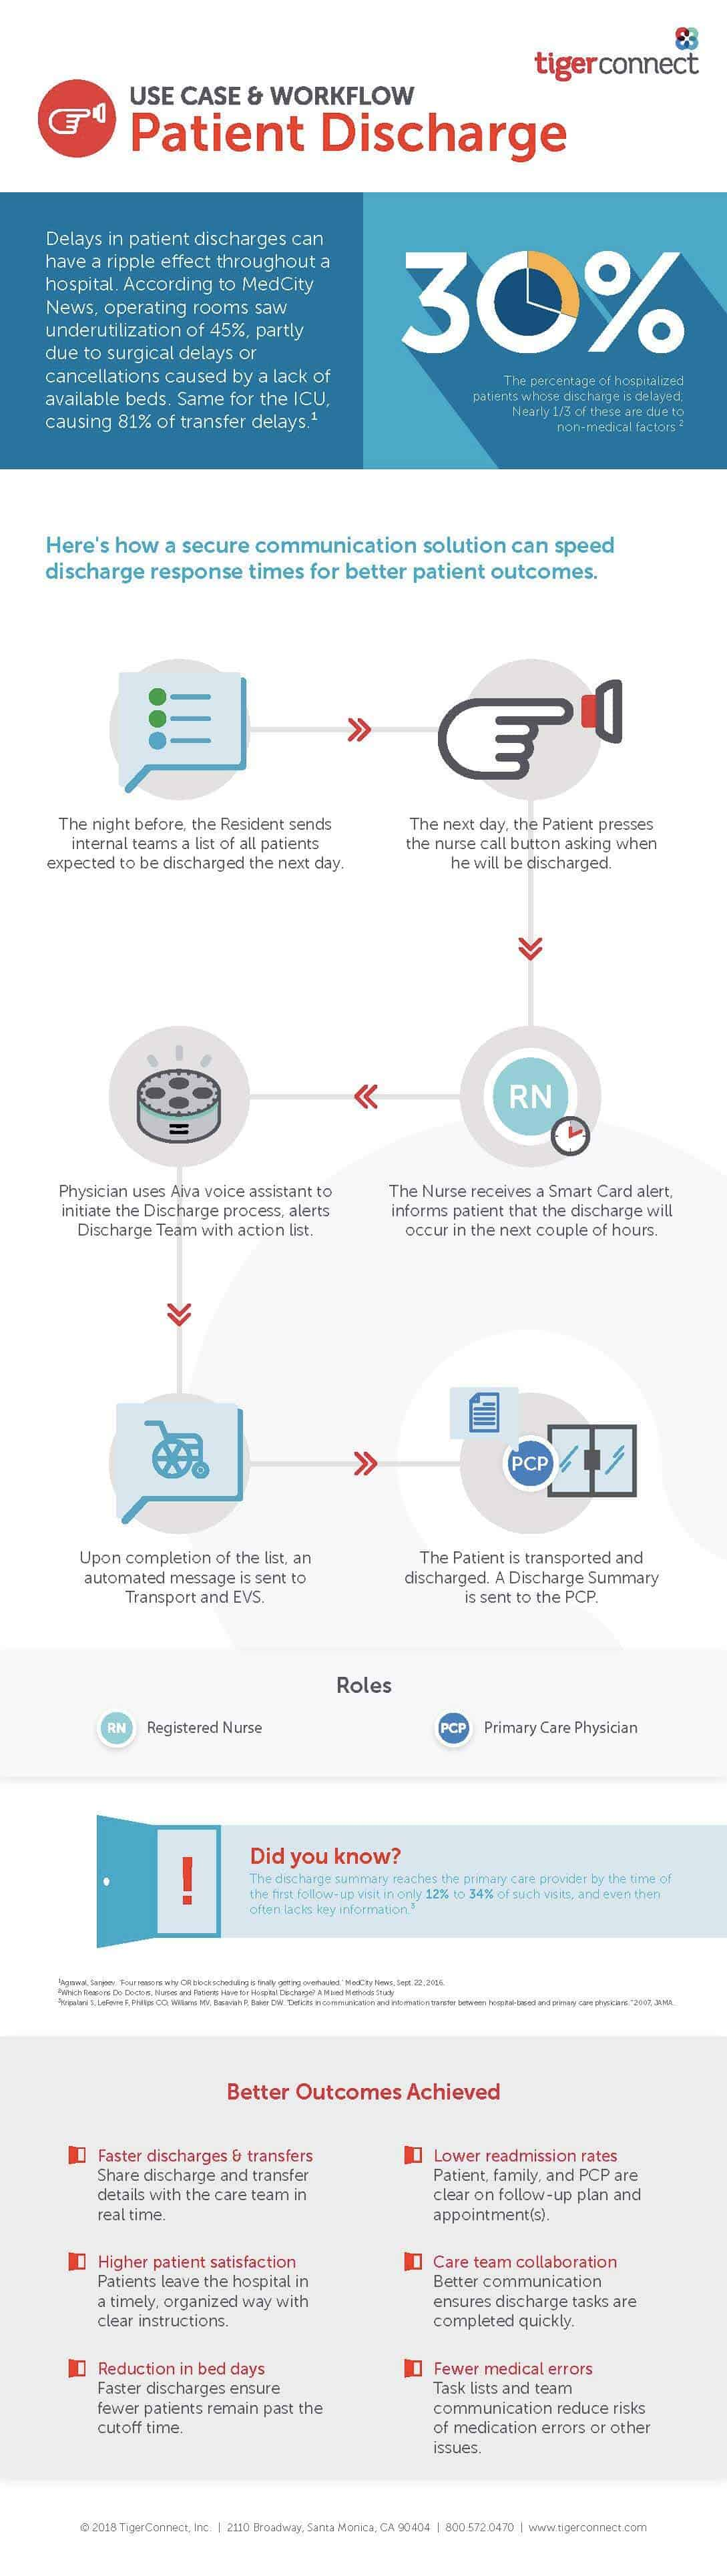 Stroke: Use Case & Workflow Infographic Preview Image